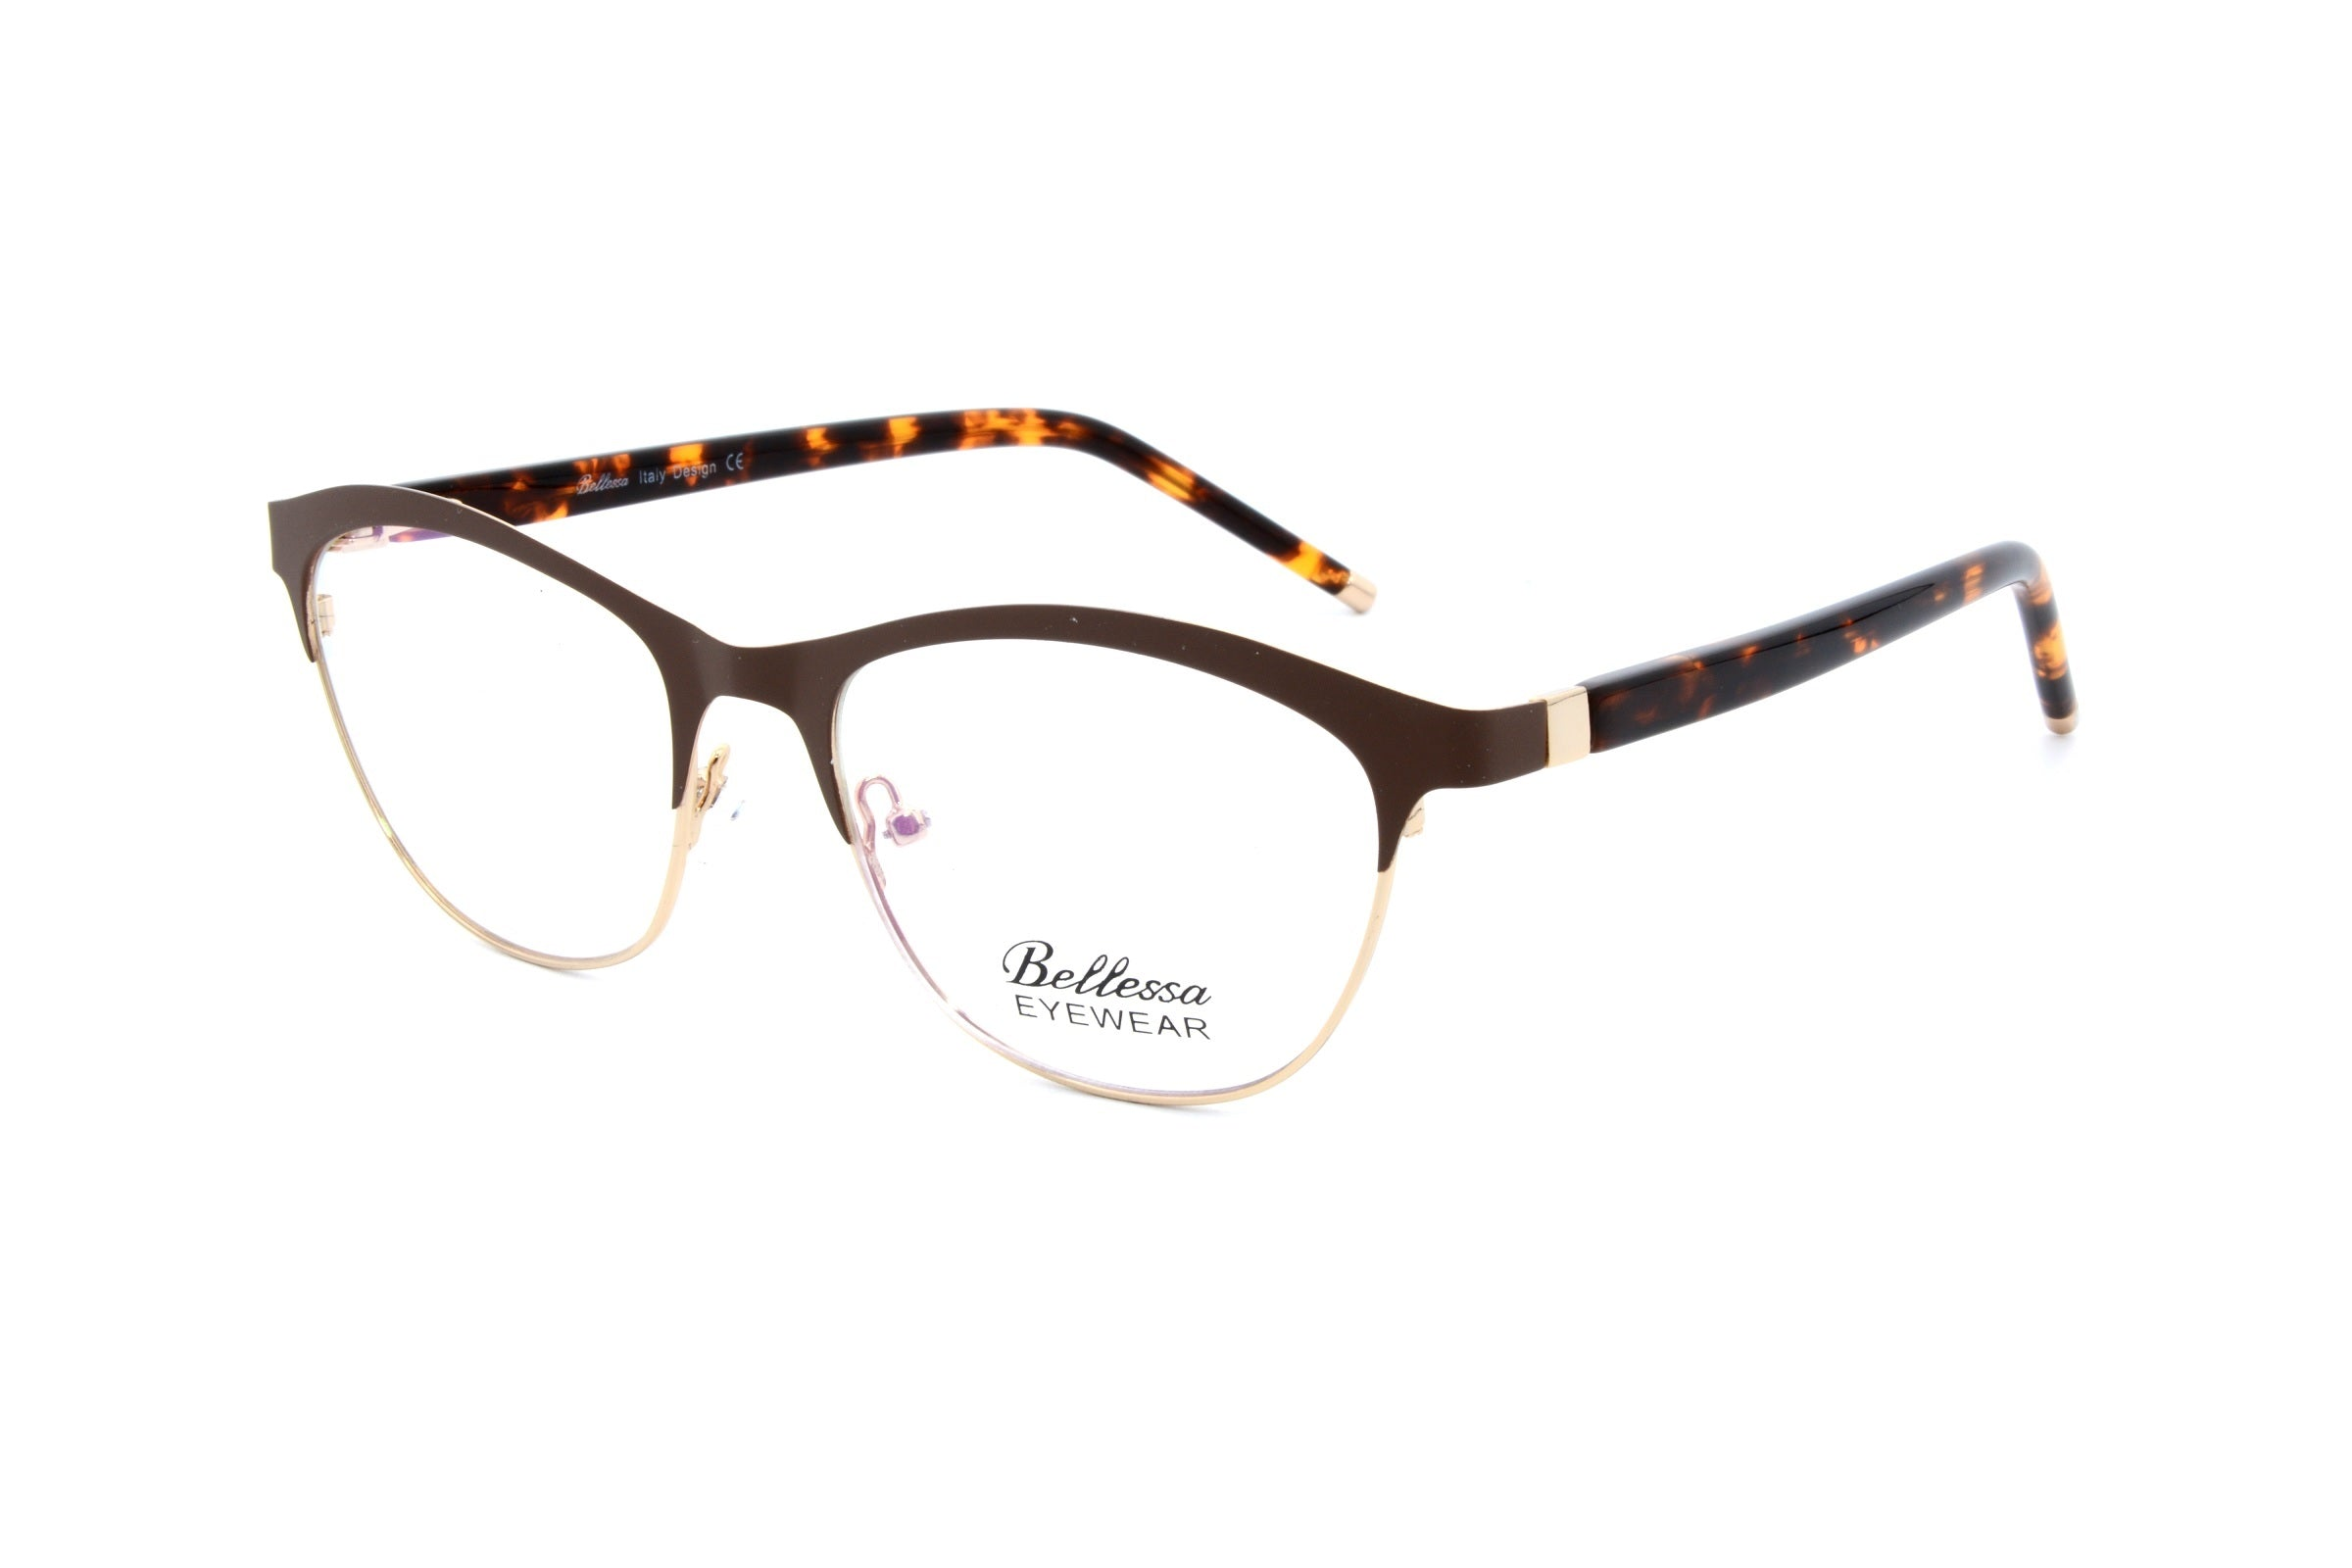 Bellessa eyewear 7910, 466 - Optics Trading